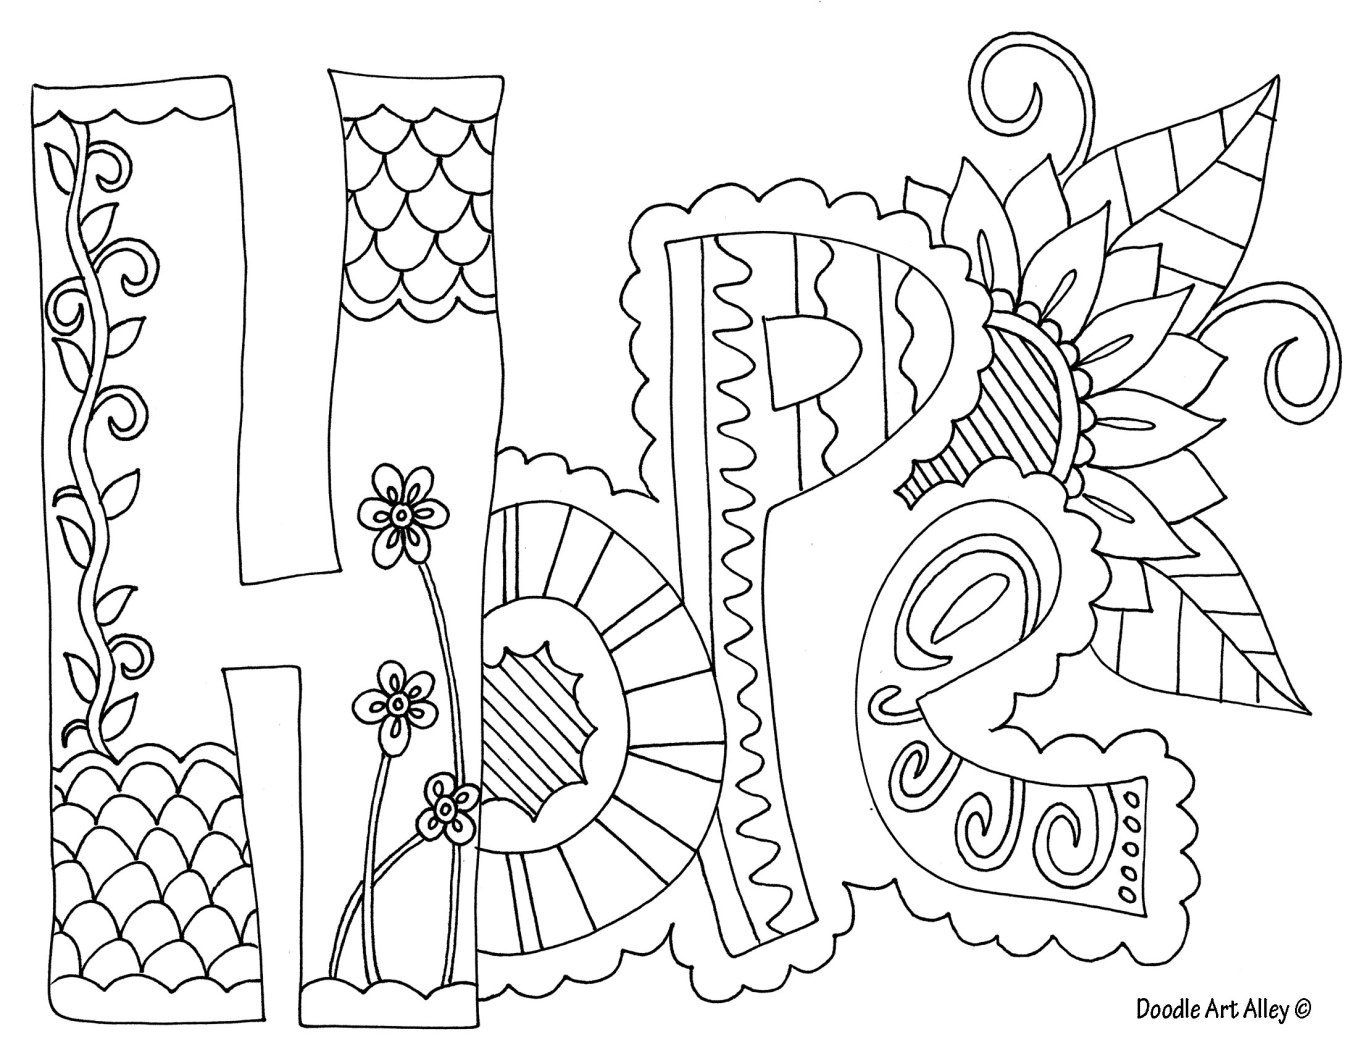 Simple File Sharing And Storage Bible Coloring Pages Coloring Pages Bible Coloring